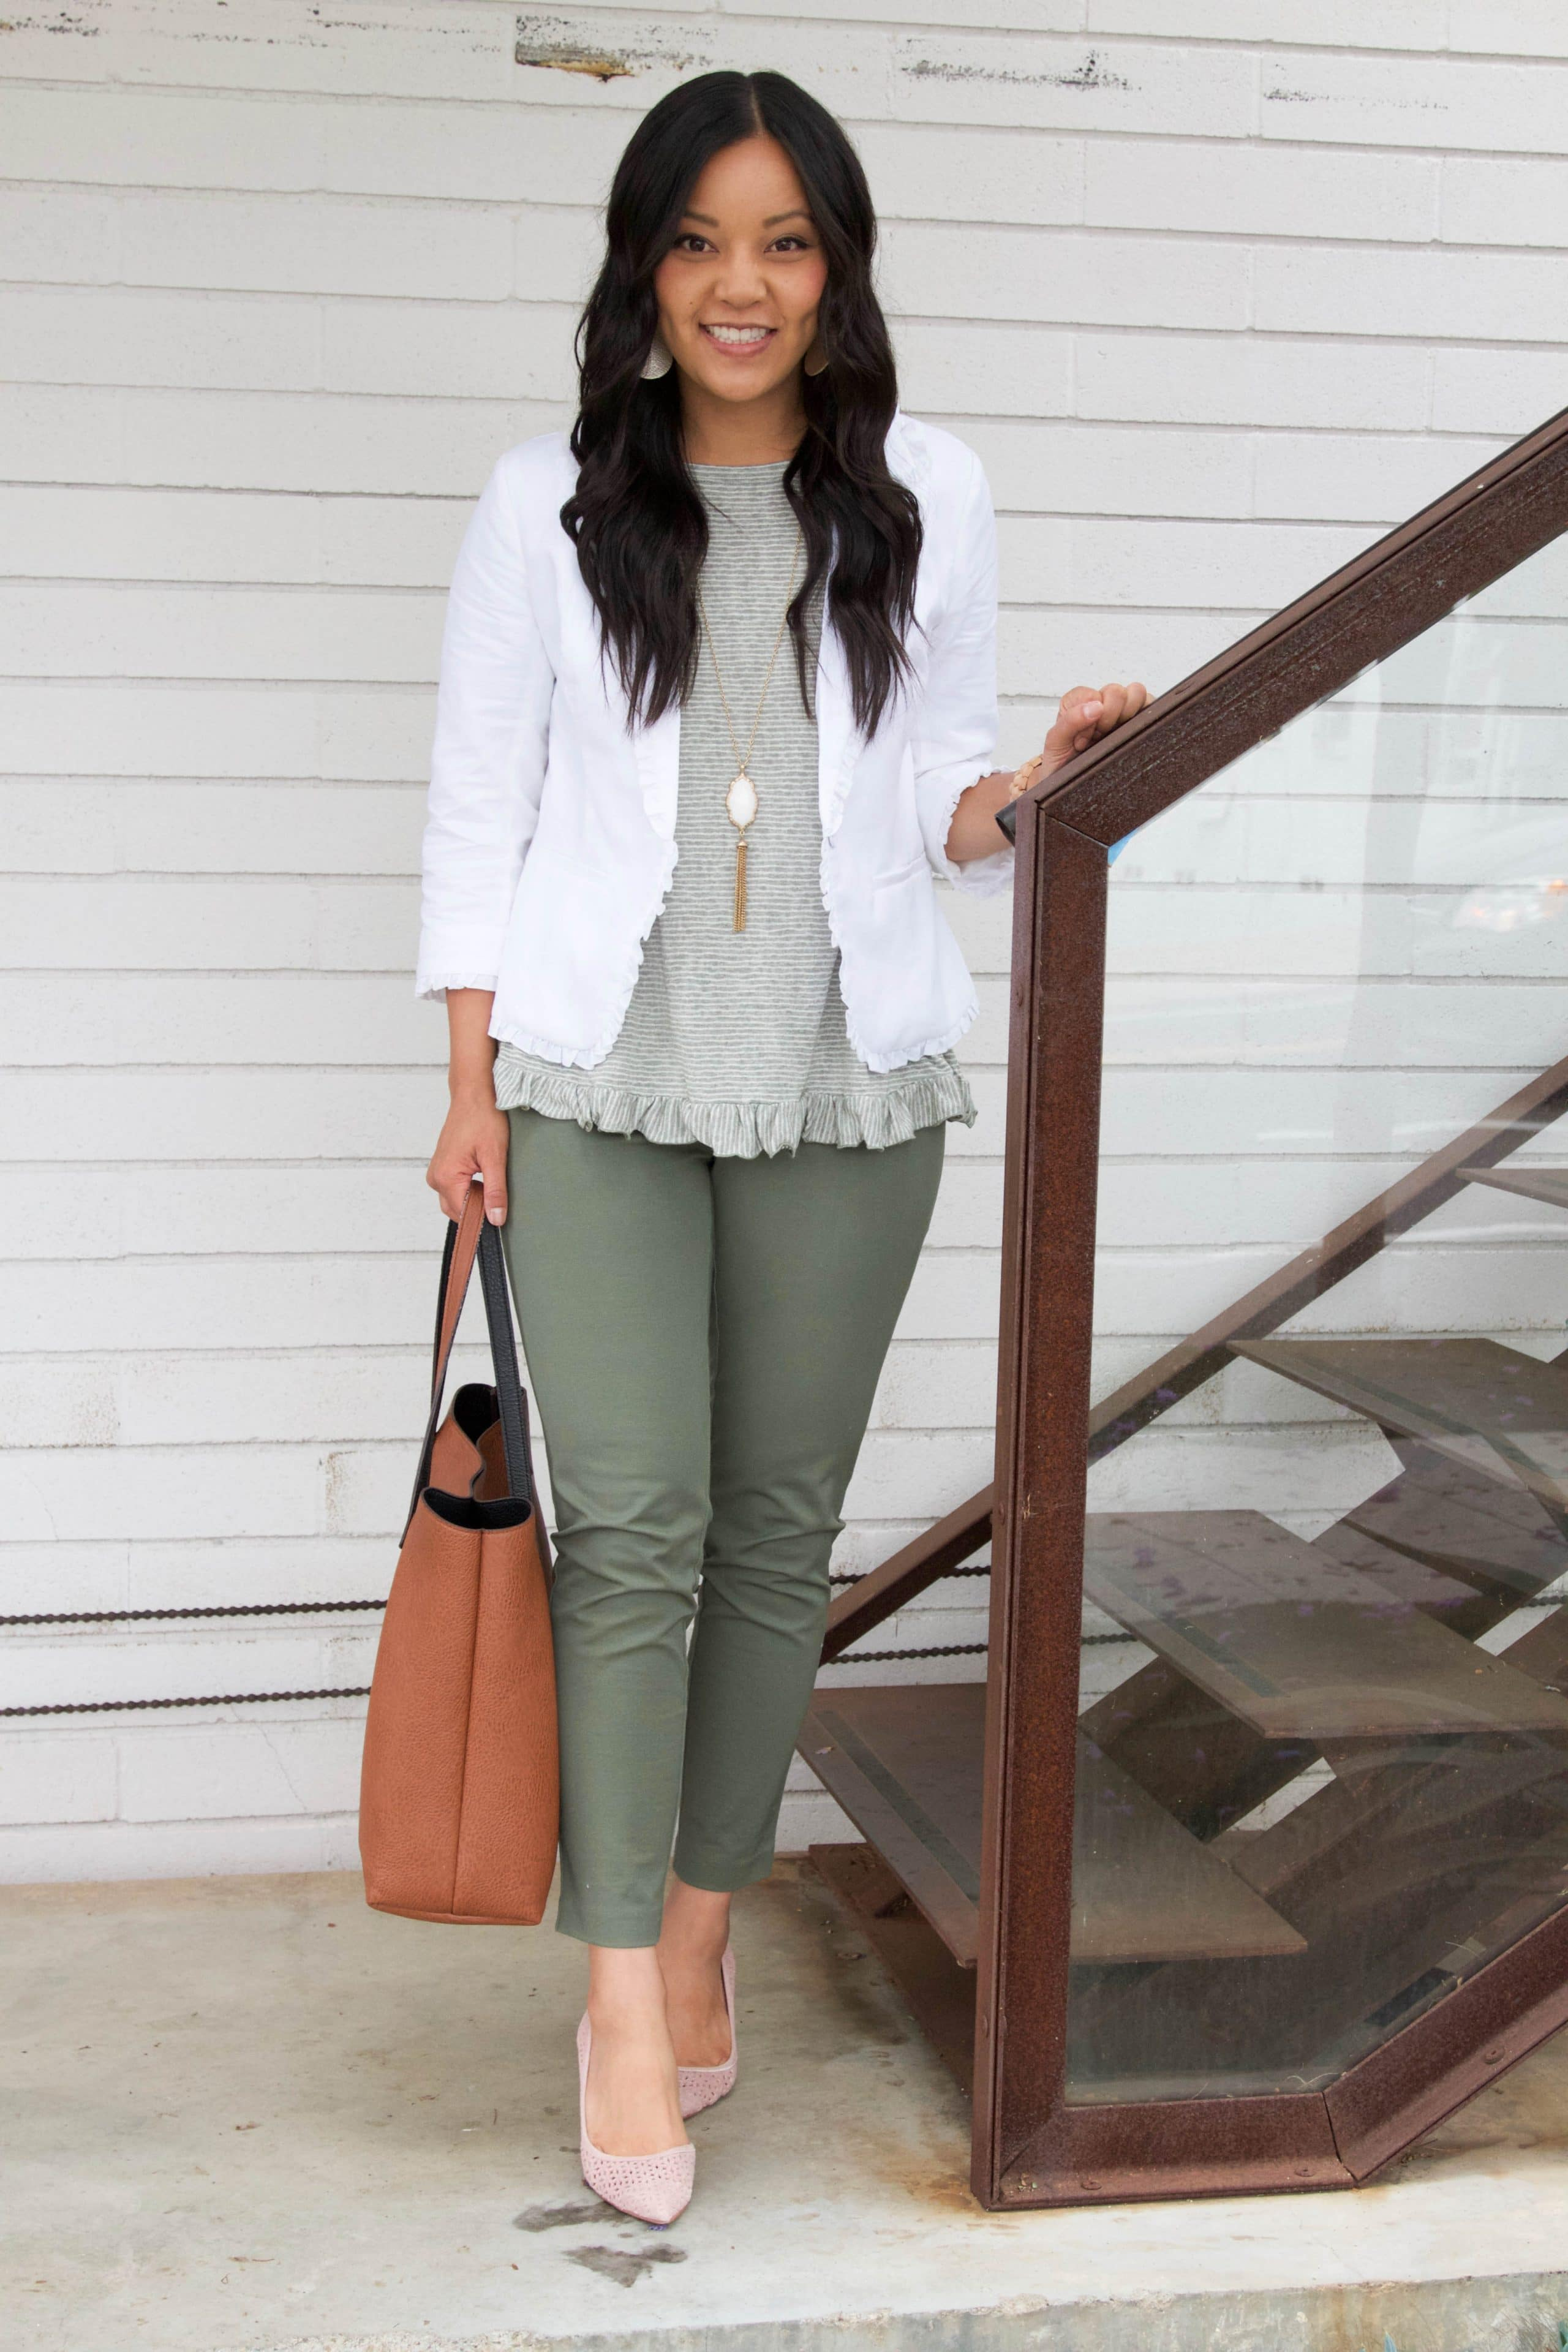 White Blazer + Ruffle Top + Olive Pants + Blush Heels